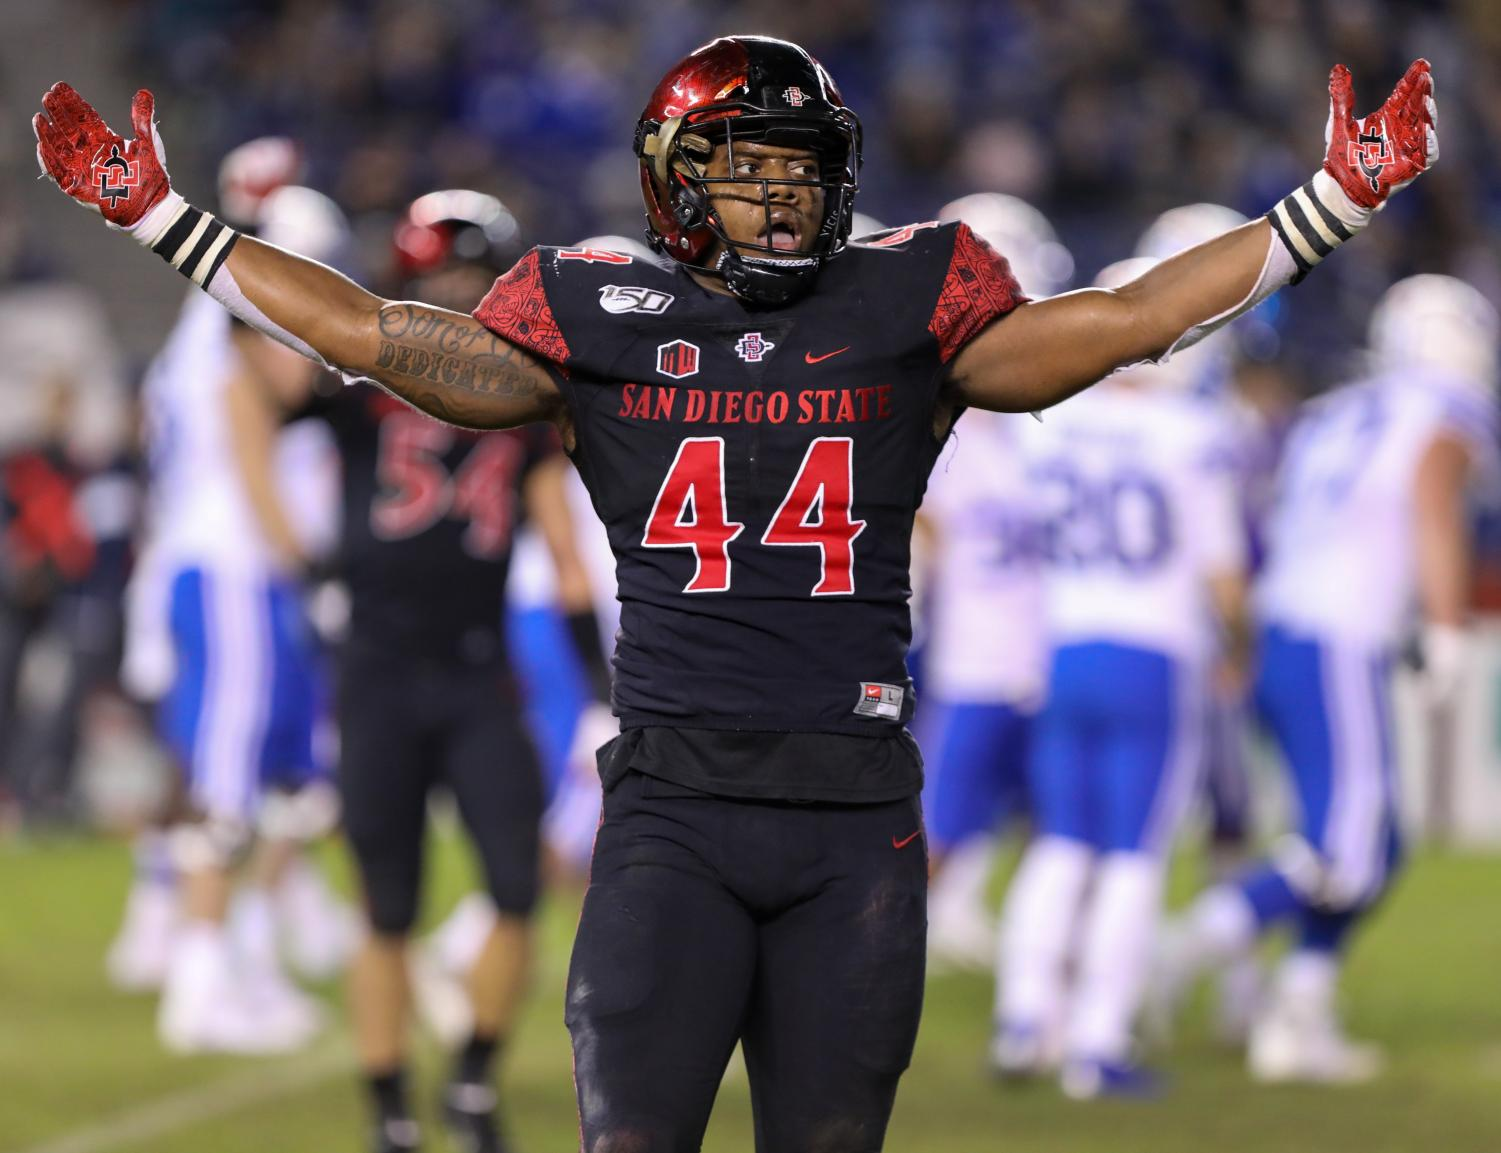 Senior linebacker Kyahva Tezino reacts after a play during the Aztecs' 13-3 victory over BYU on Nov. 30